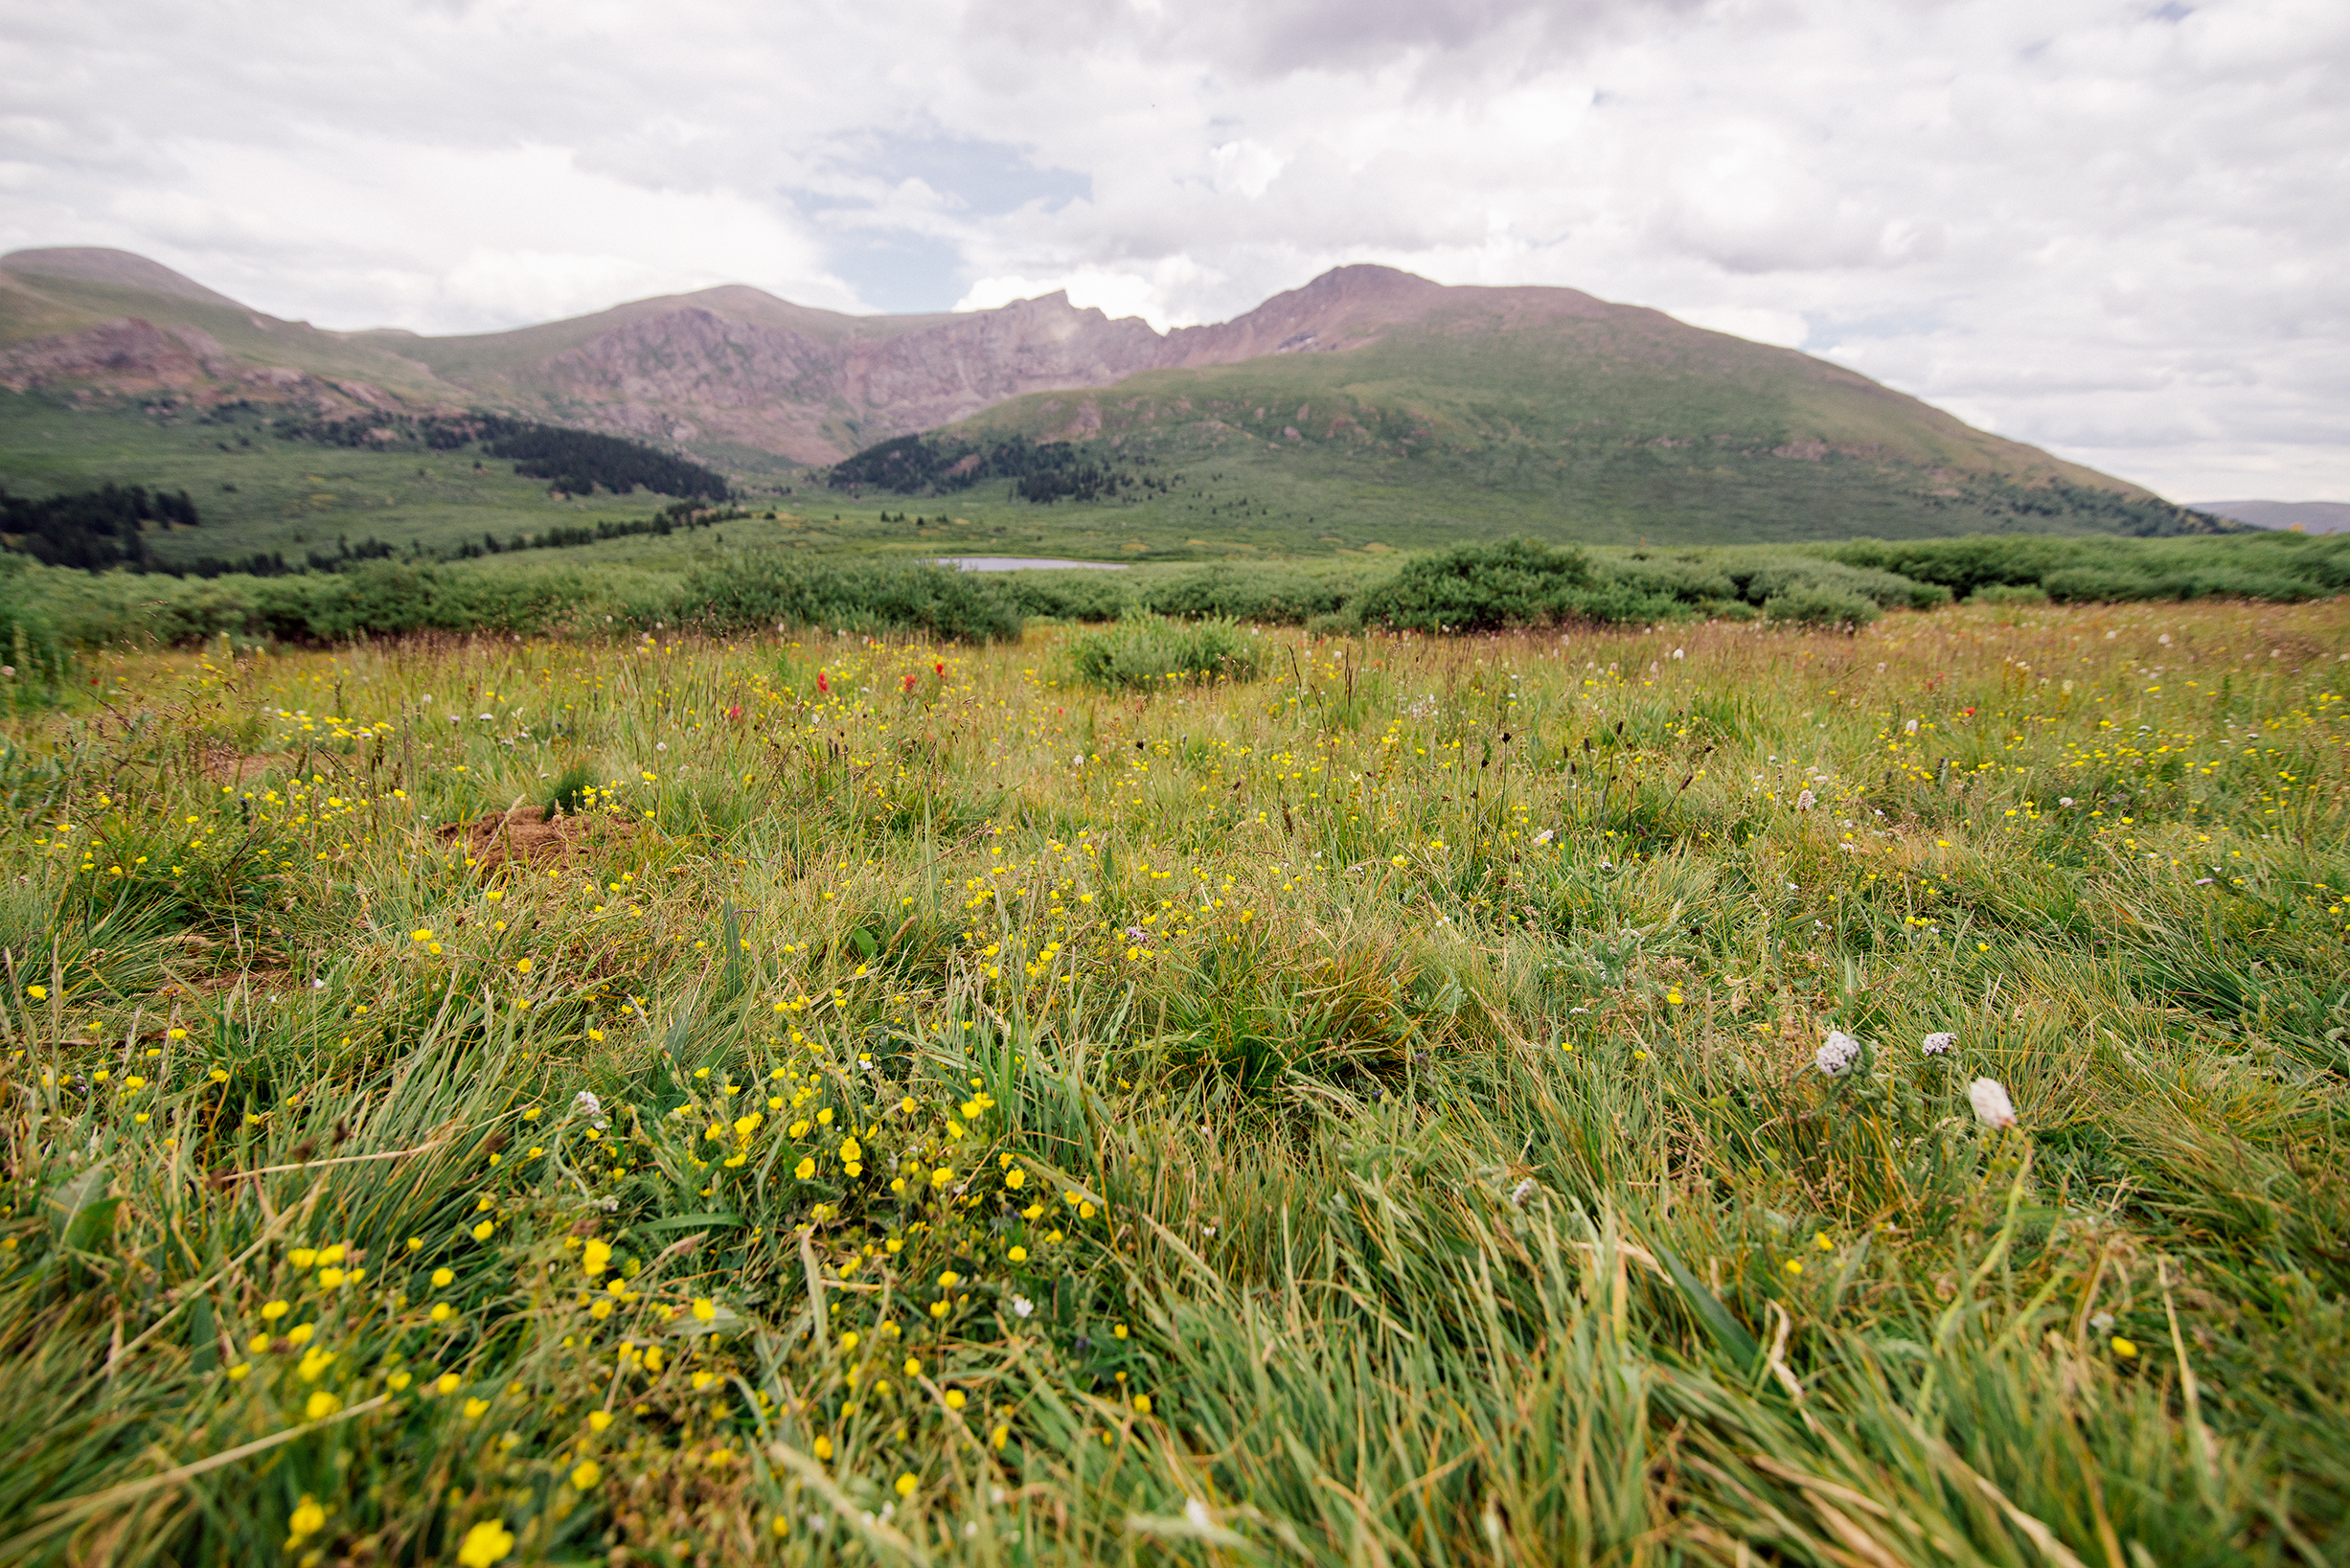 Alpine Flowers in front of Mount Bierstadt